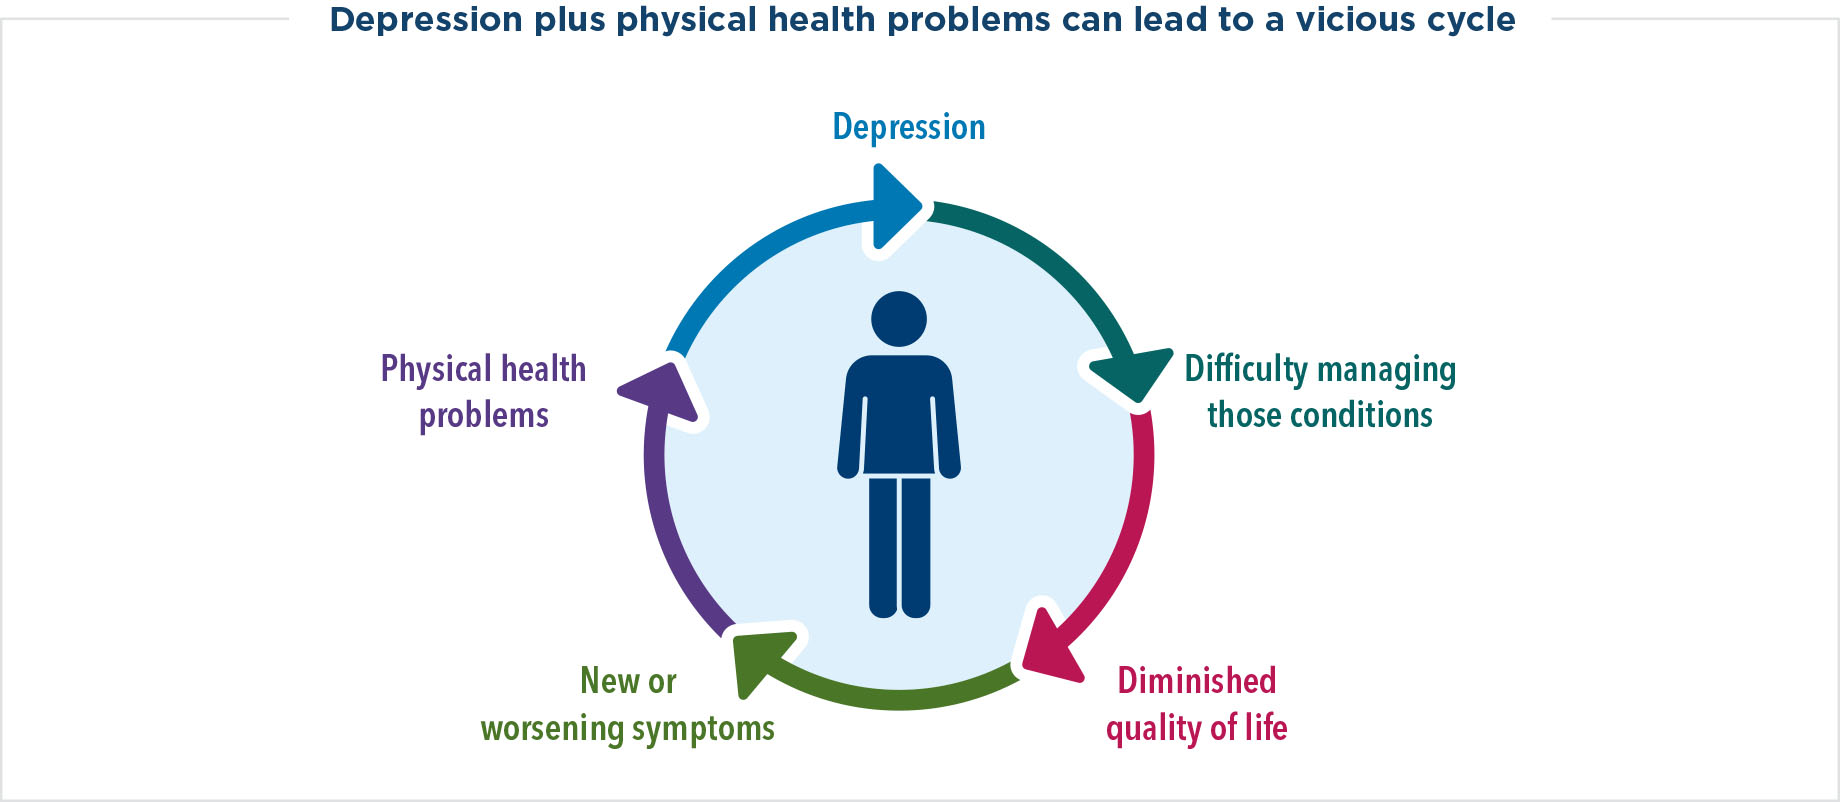 Depression plus physical health problems can lead to a vicious cycle. The cycle of depression, difficulty managing those conditions, diminished quality of life, and new or worsening symptoms is continuous.